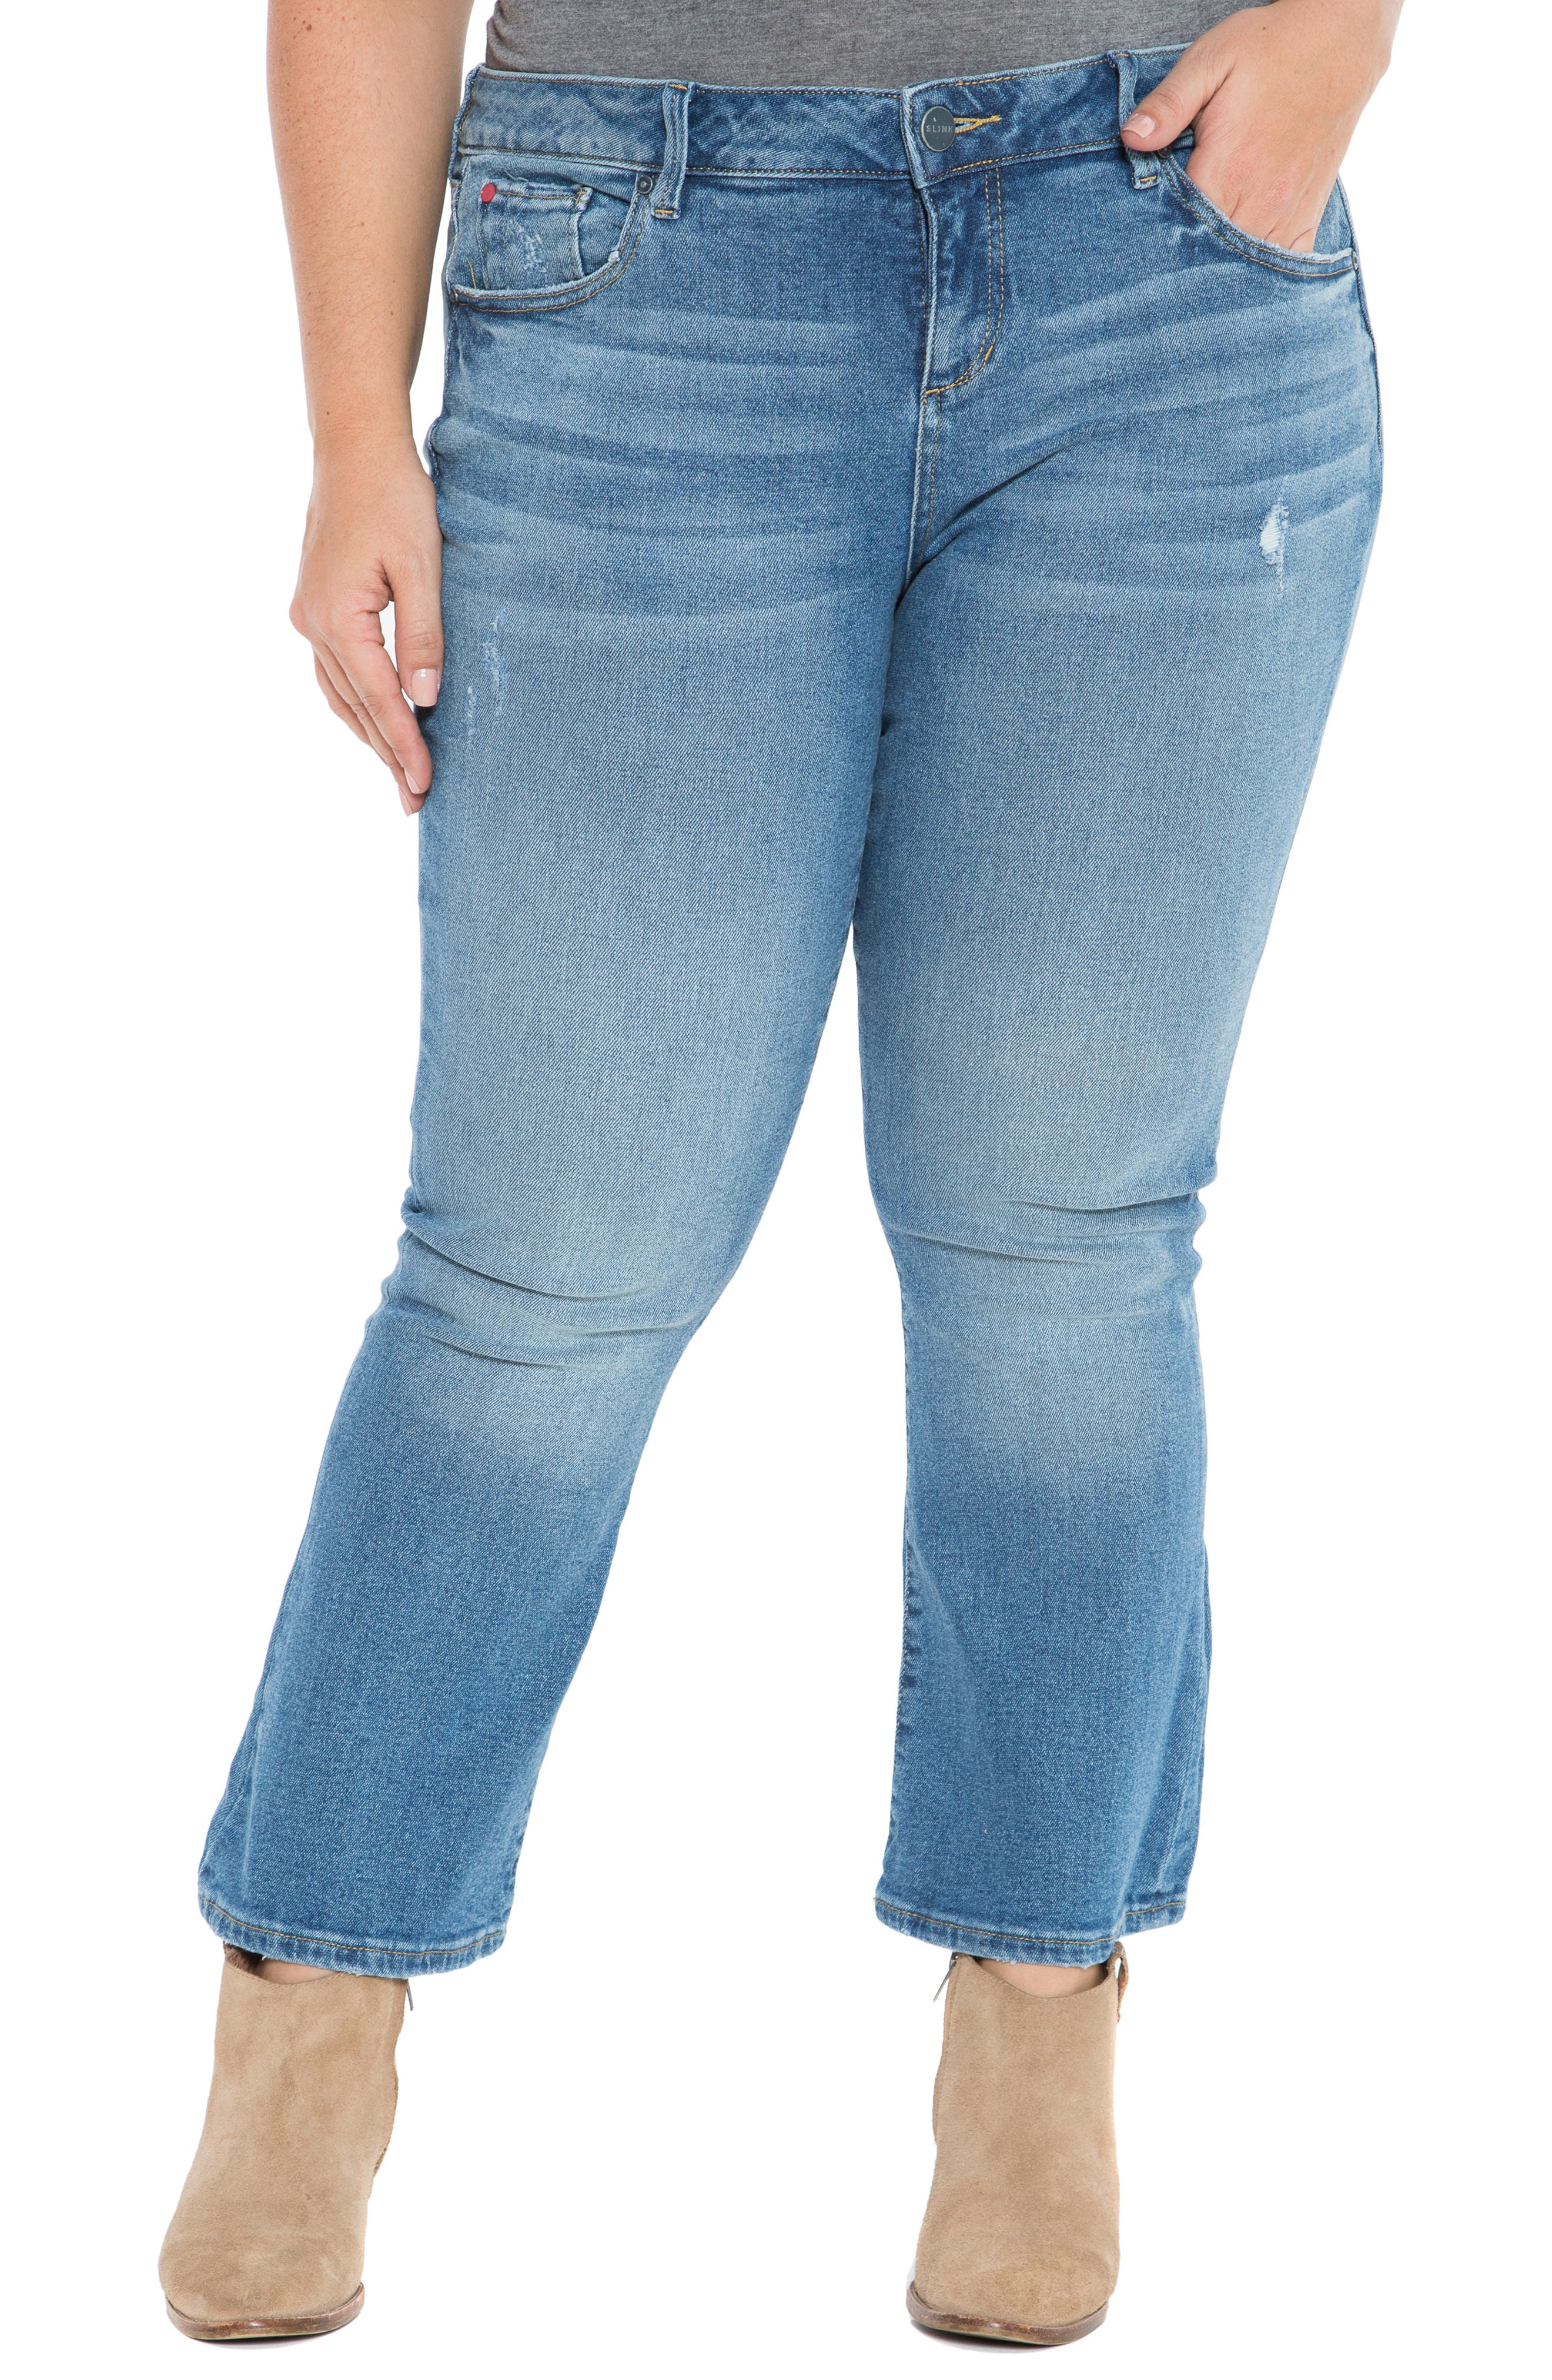 SLINK JEANS Crop Flare Jeans, Main, color, PATTI